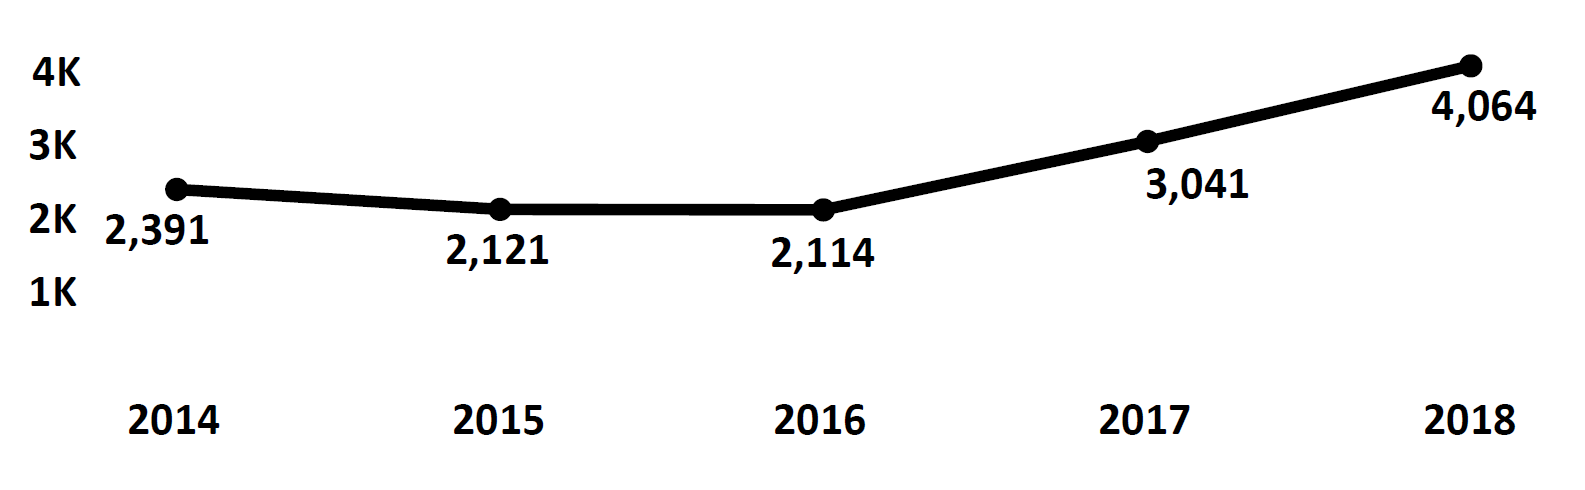 Graph of Do Not Call complaints recorded in Alaska from fiscal year 2014 to fiscal year 2018. In 2014 there were 2,391 complaints filed. This decreased the next two years, then increased to peak at 4,064 in 2018.